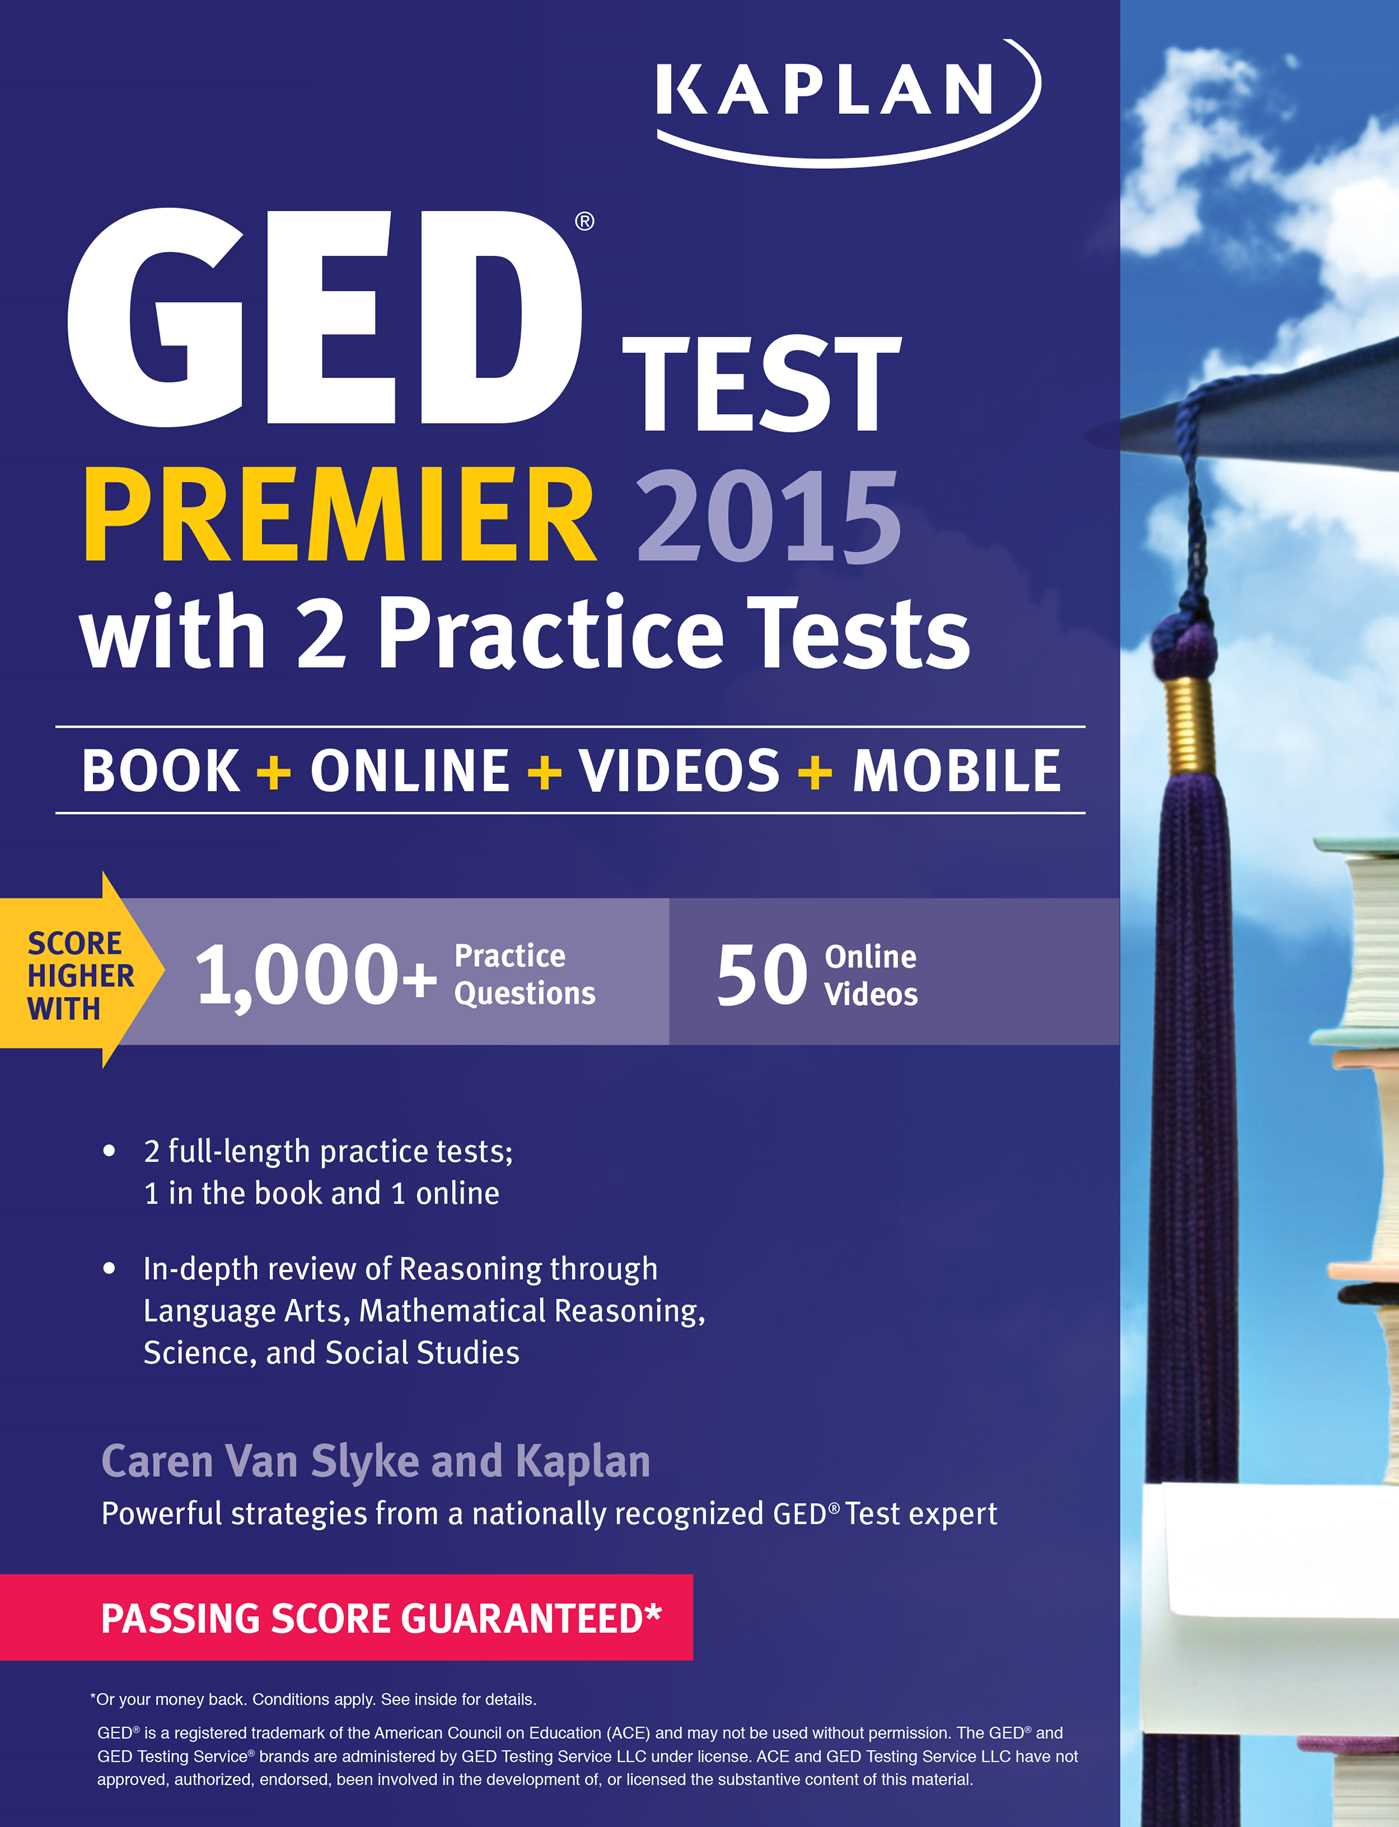 Kaplan-ged-test-premier-2015-with-2-practice-9781618658852_hr